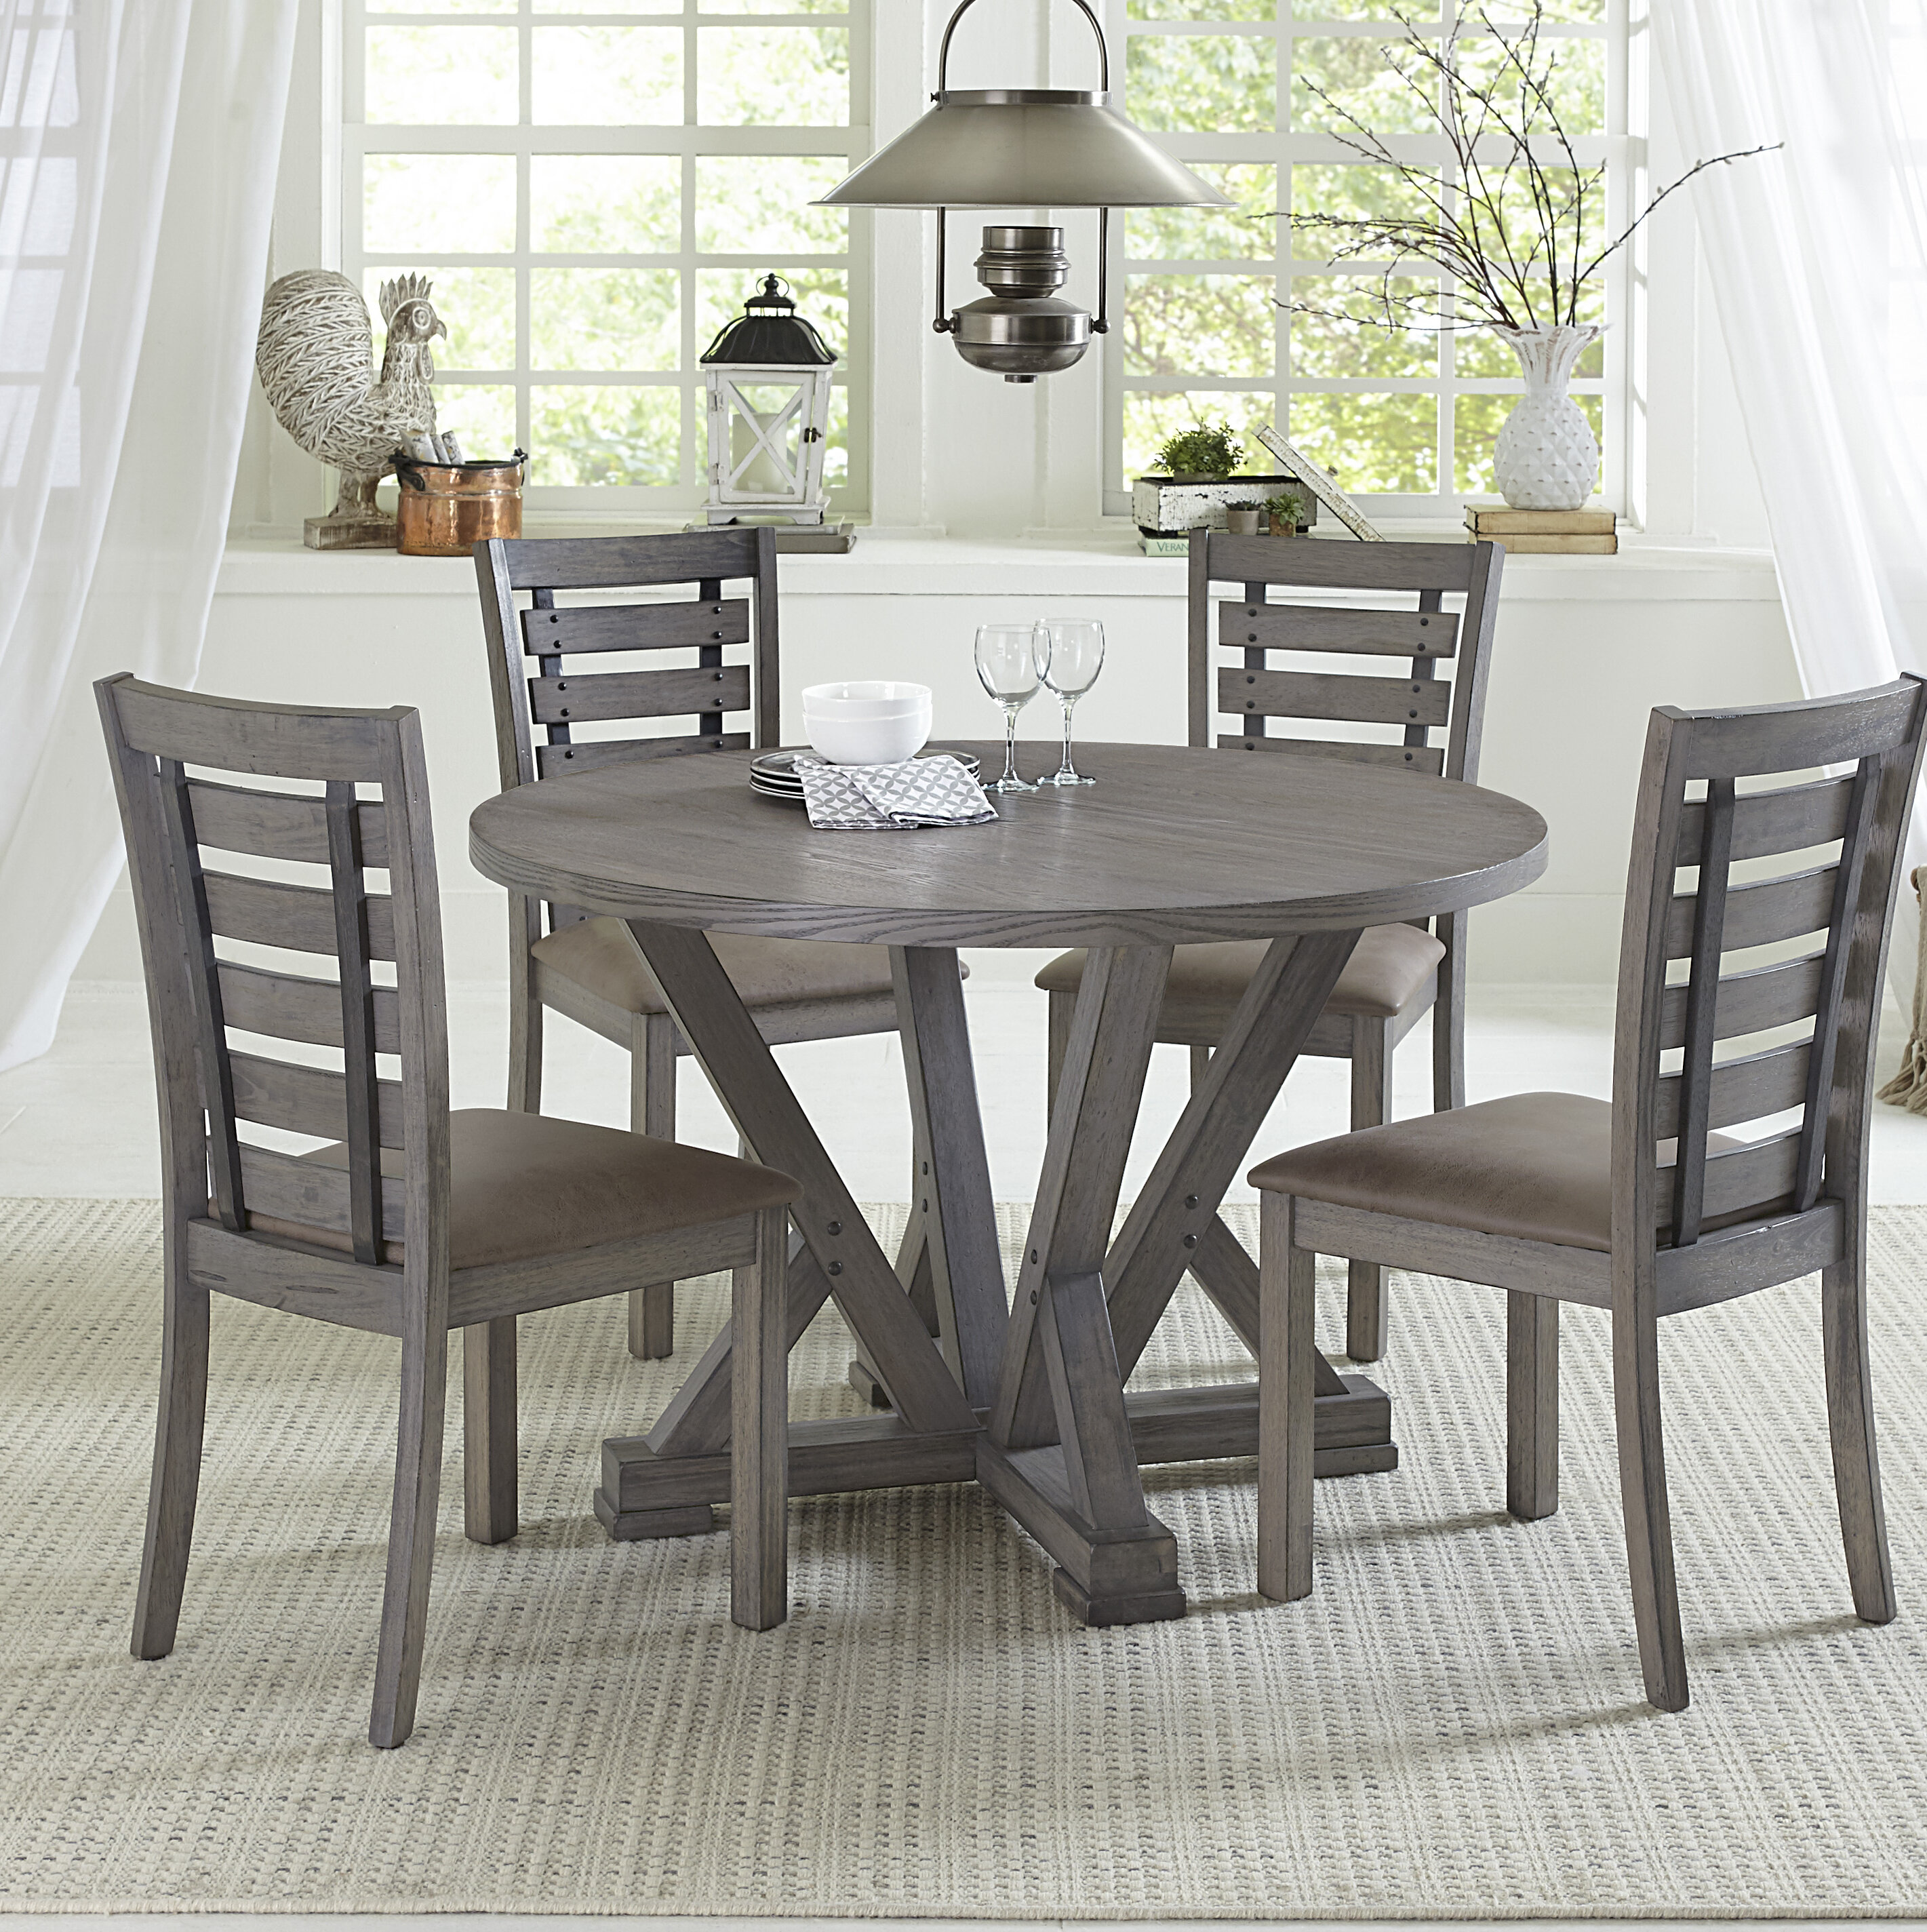 Gracie Oaks Mcwhirter 5 Piece Solid Wood Dining Set & Reviews